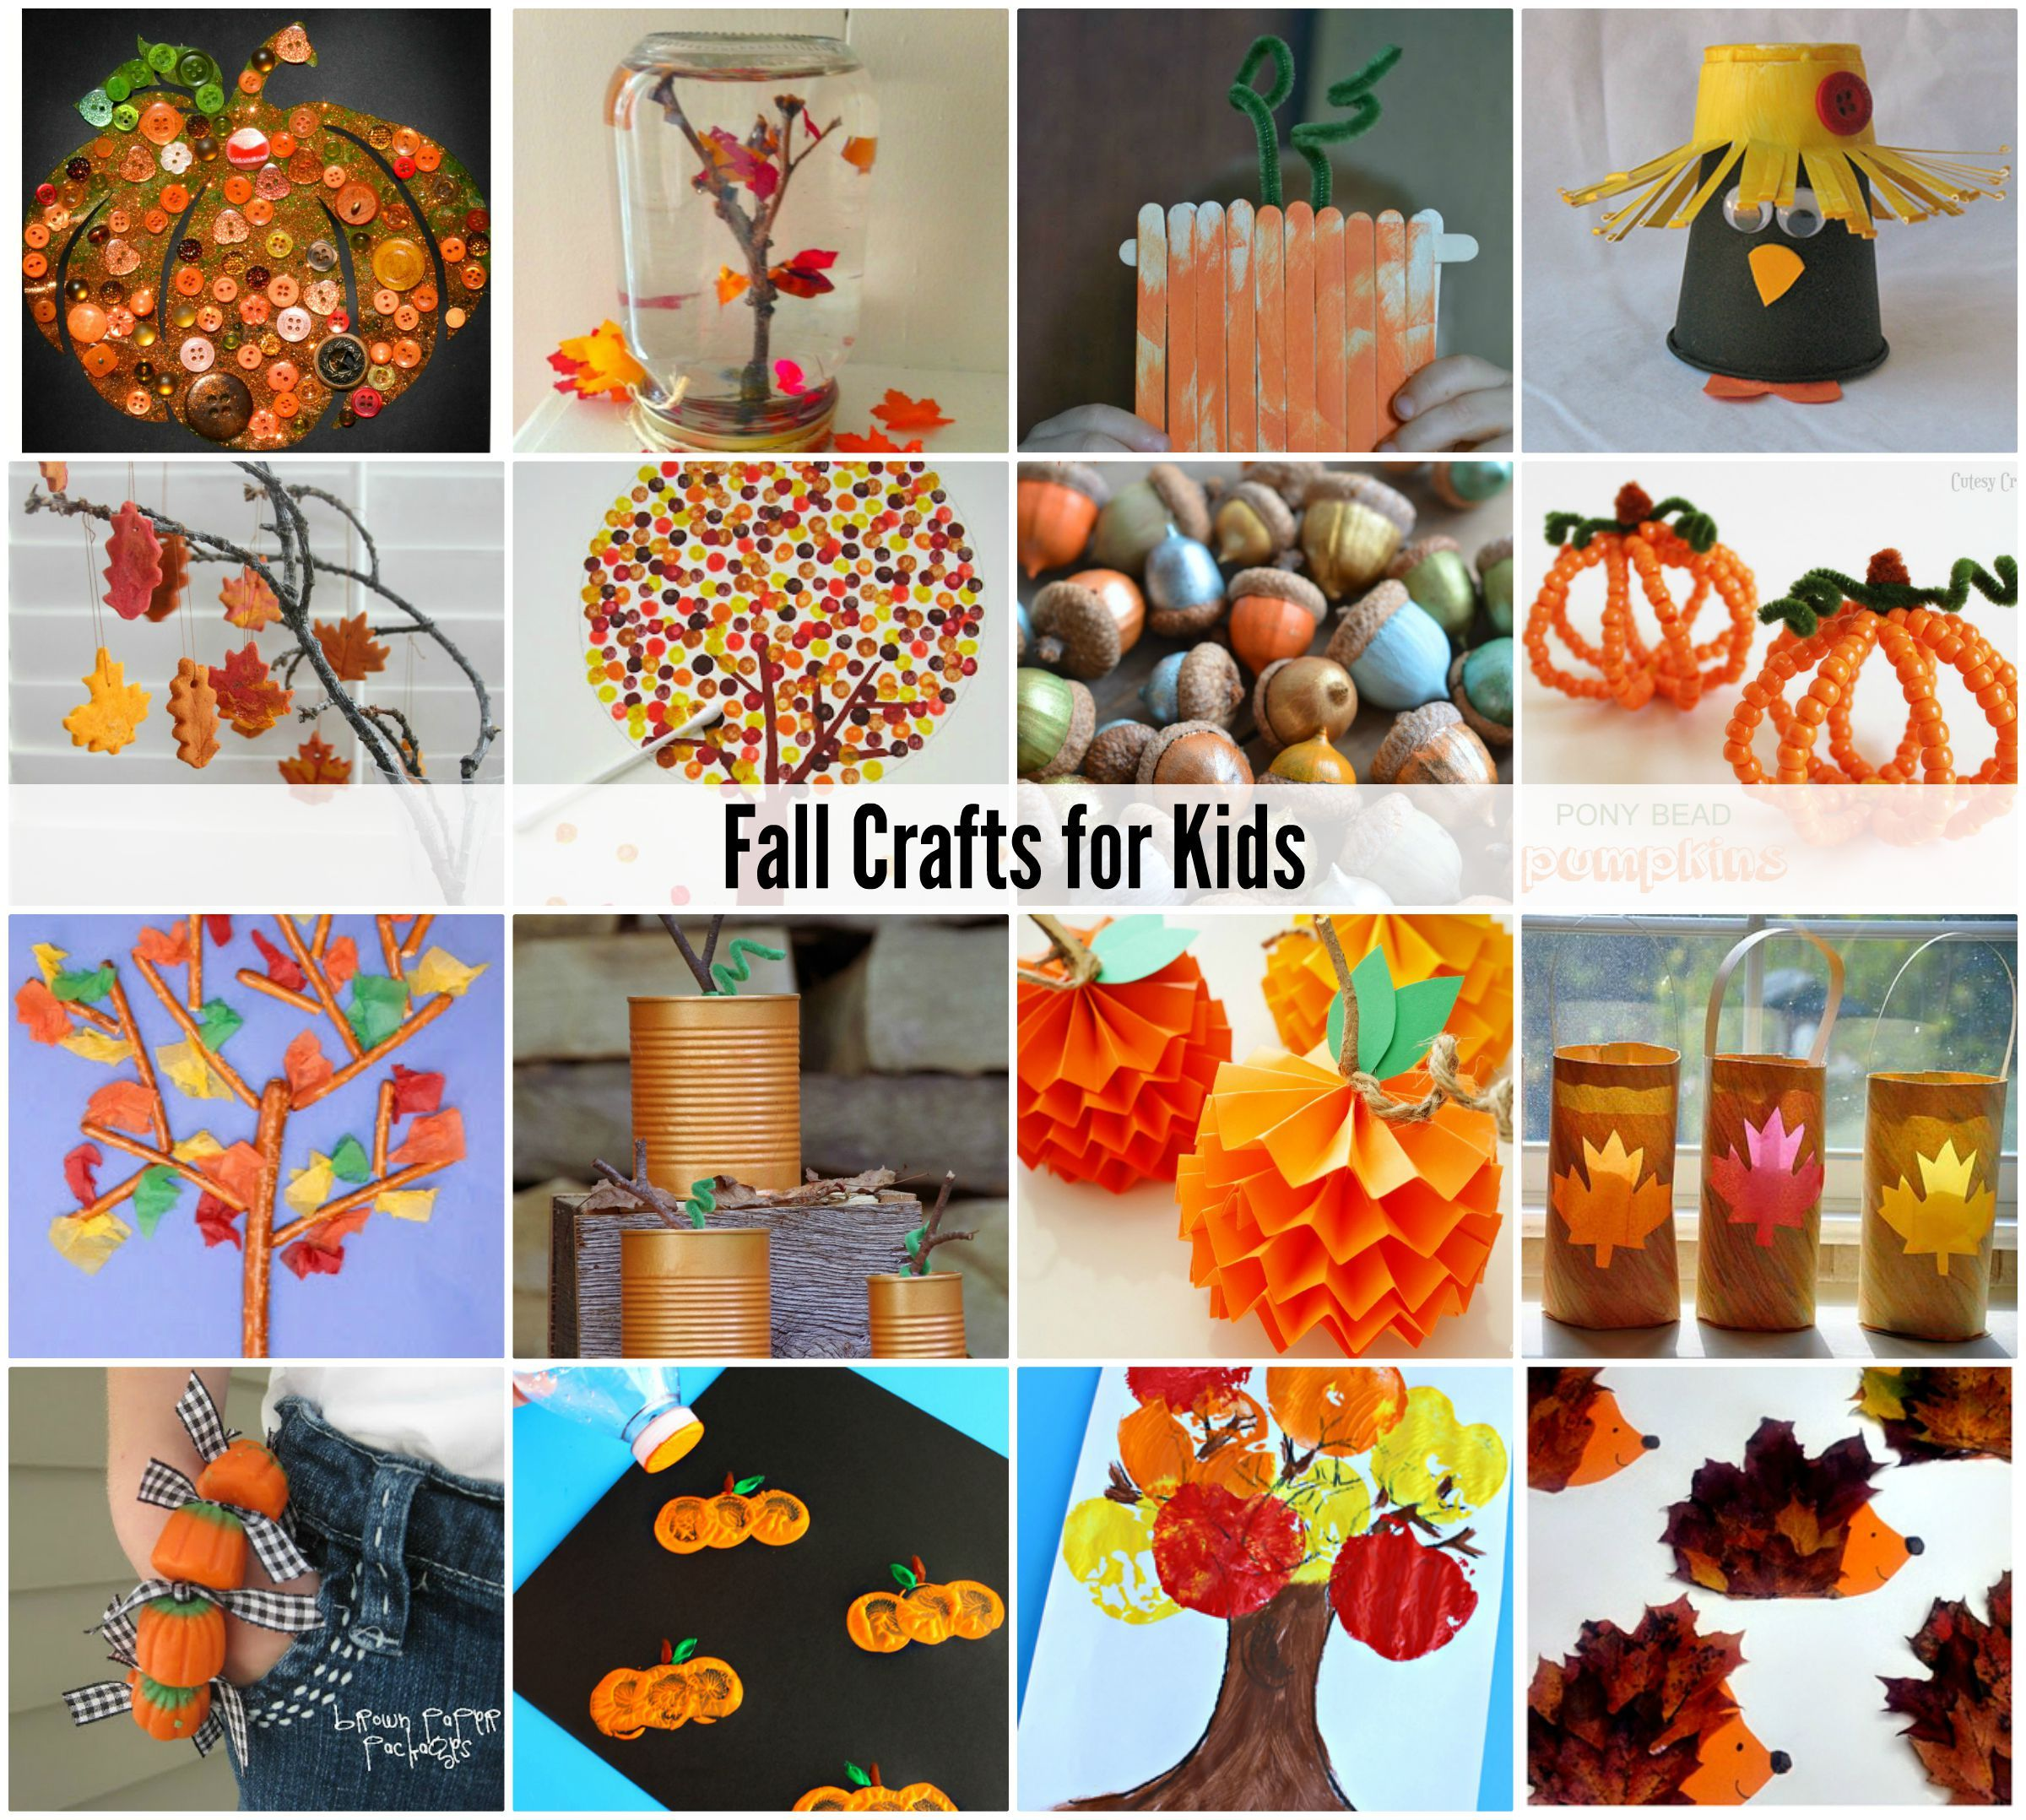 Fall-Crafts-Ideas-for-Kids-1.jpg (2400×2156)